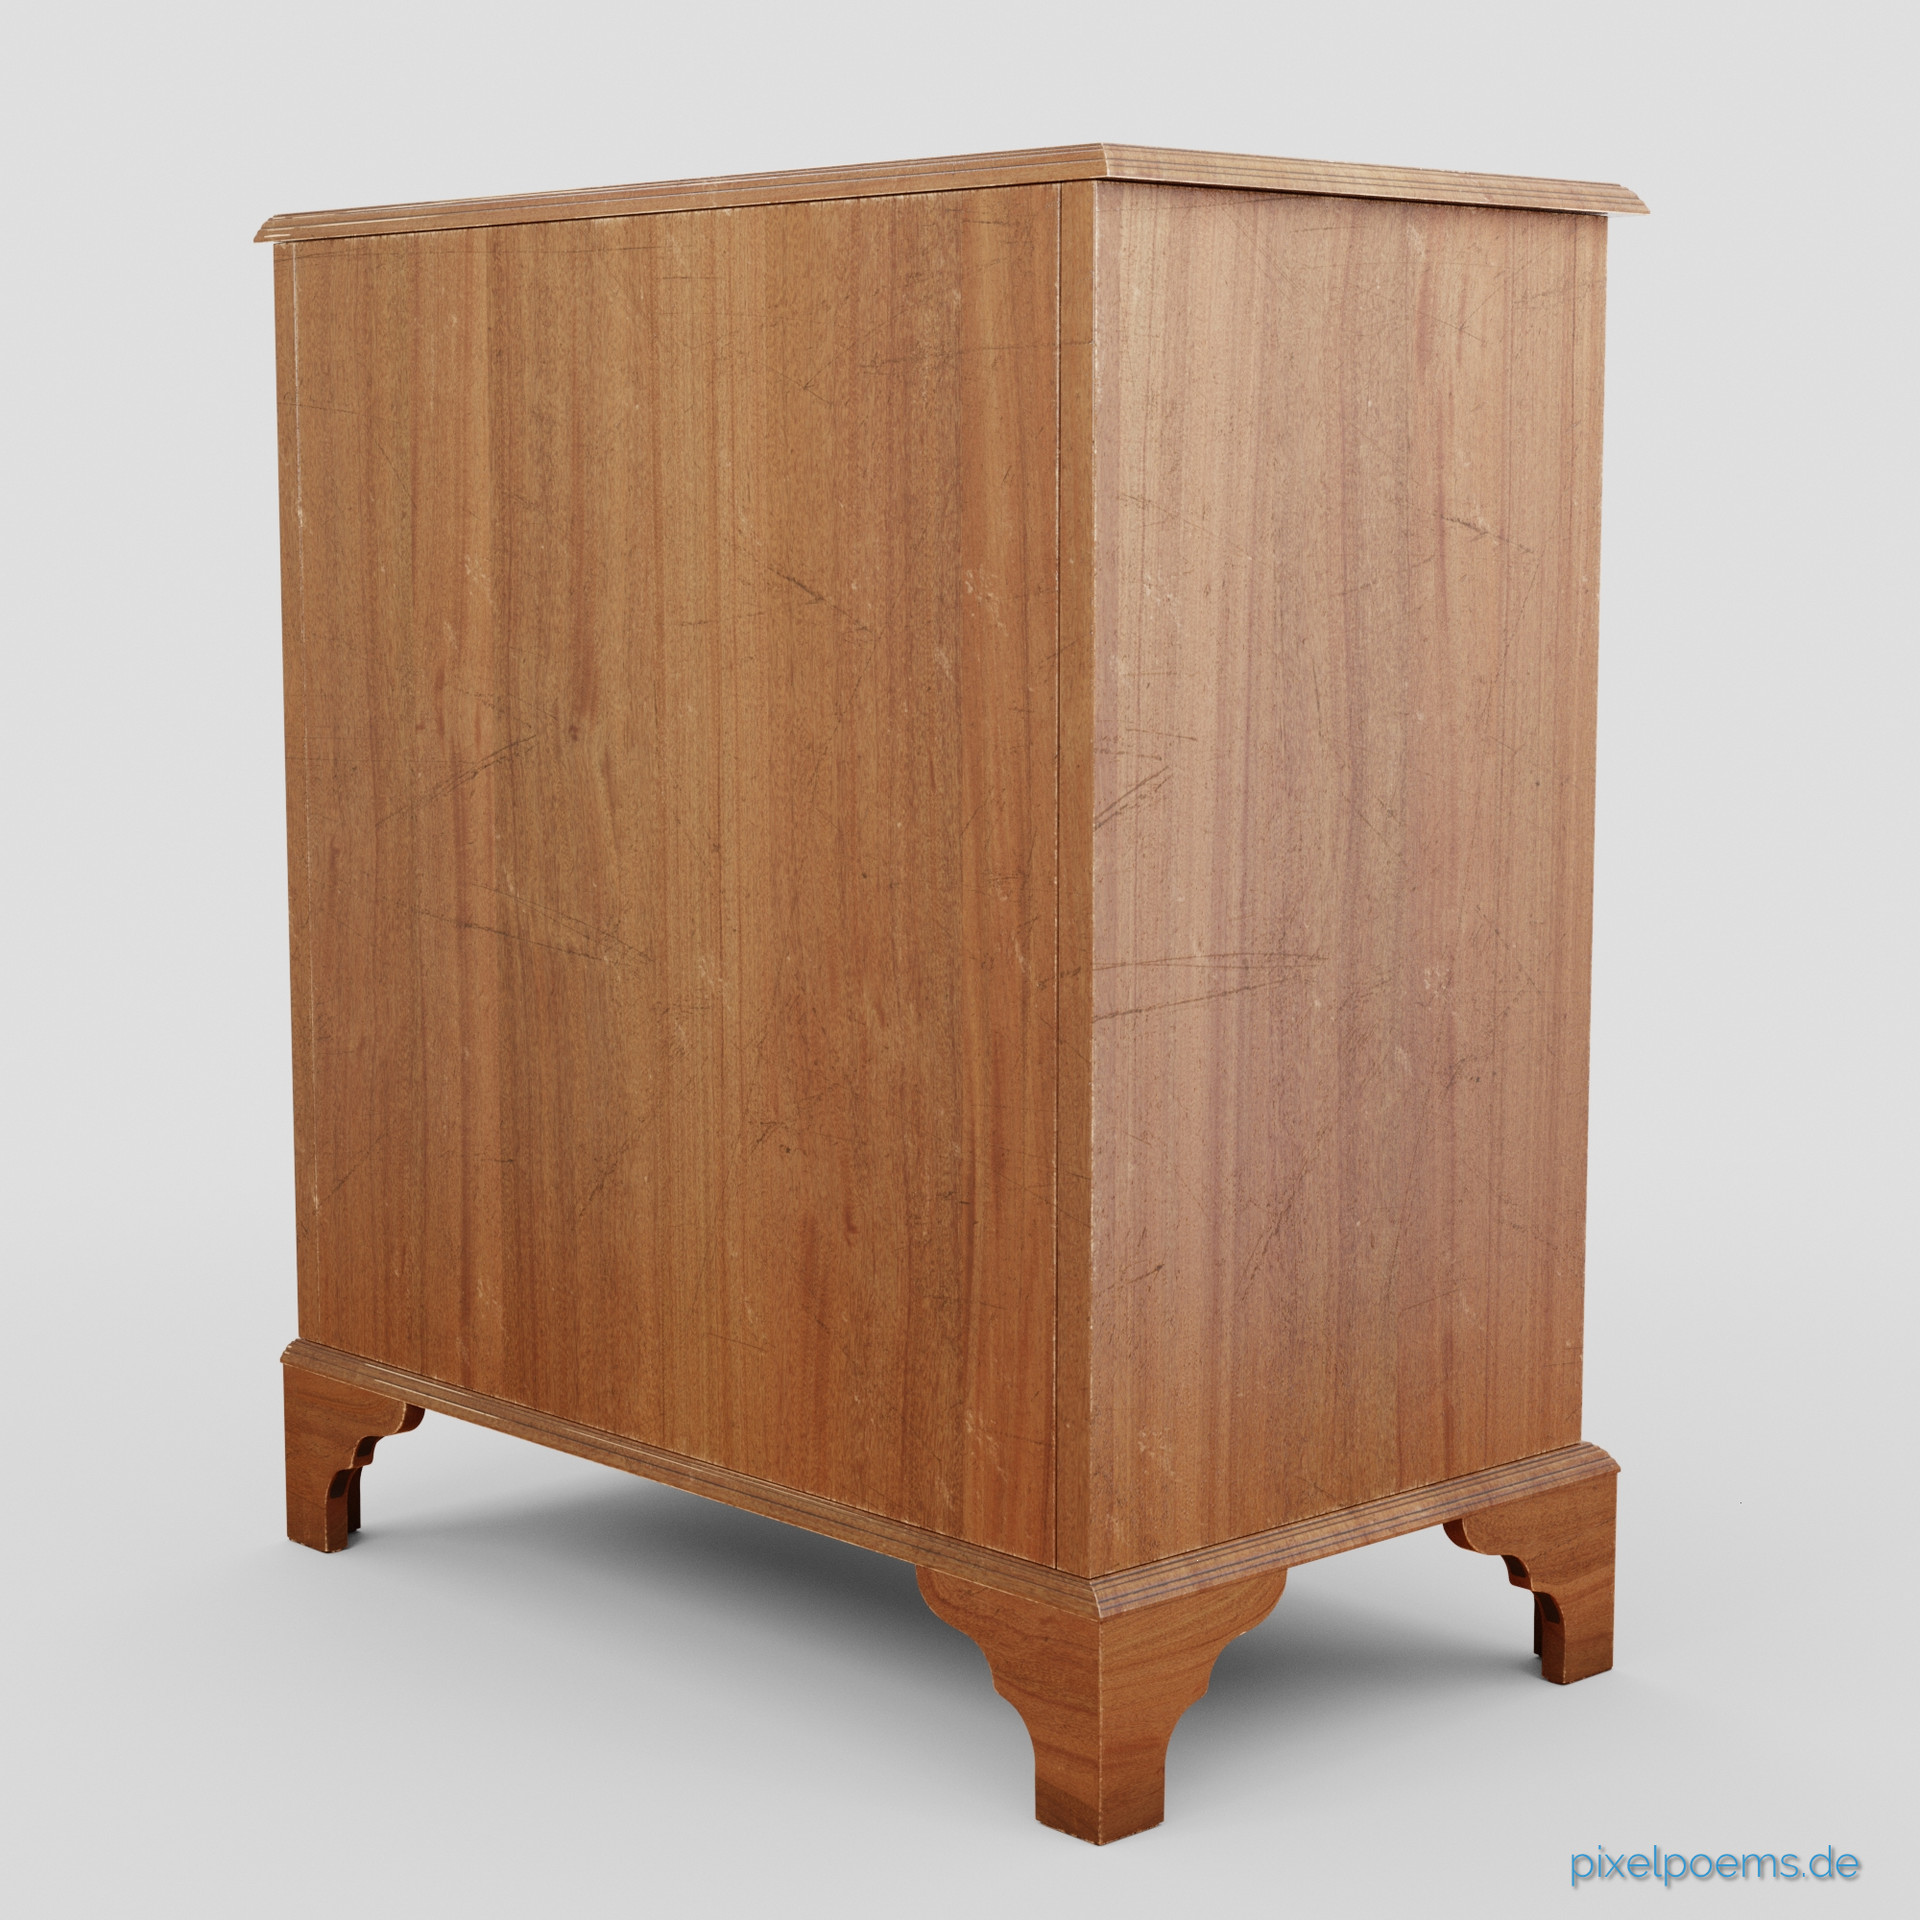 Karl andreas gross mahagony chest of drawers webversion 03